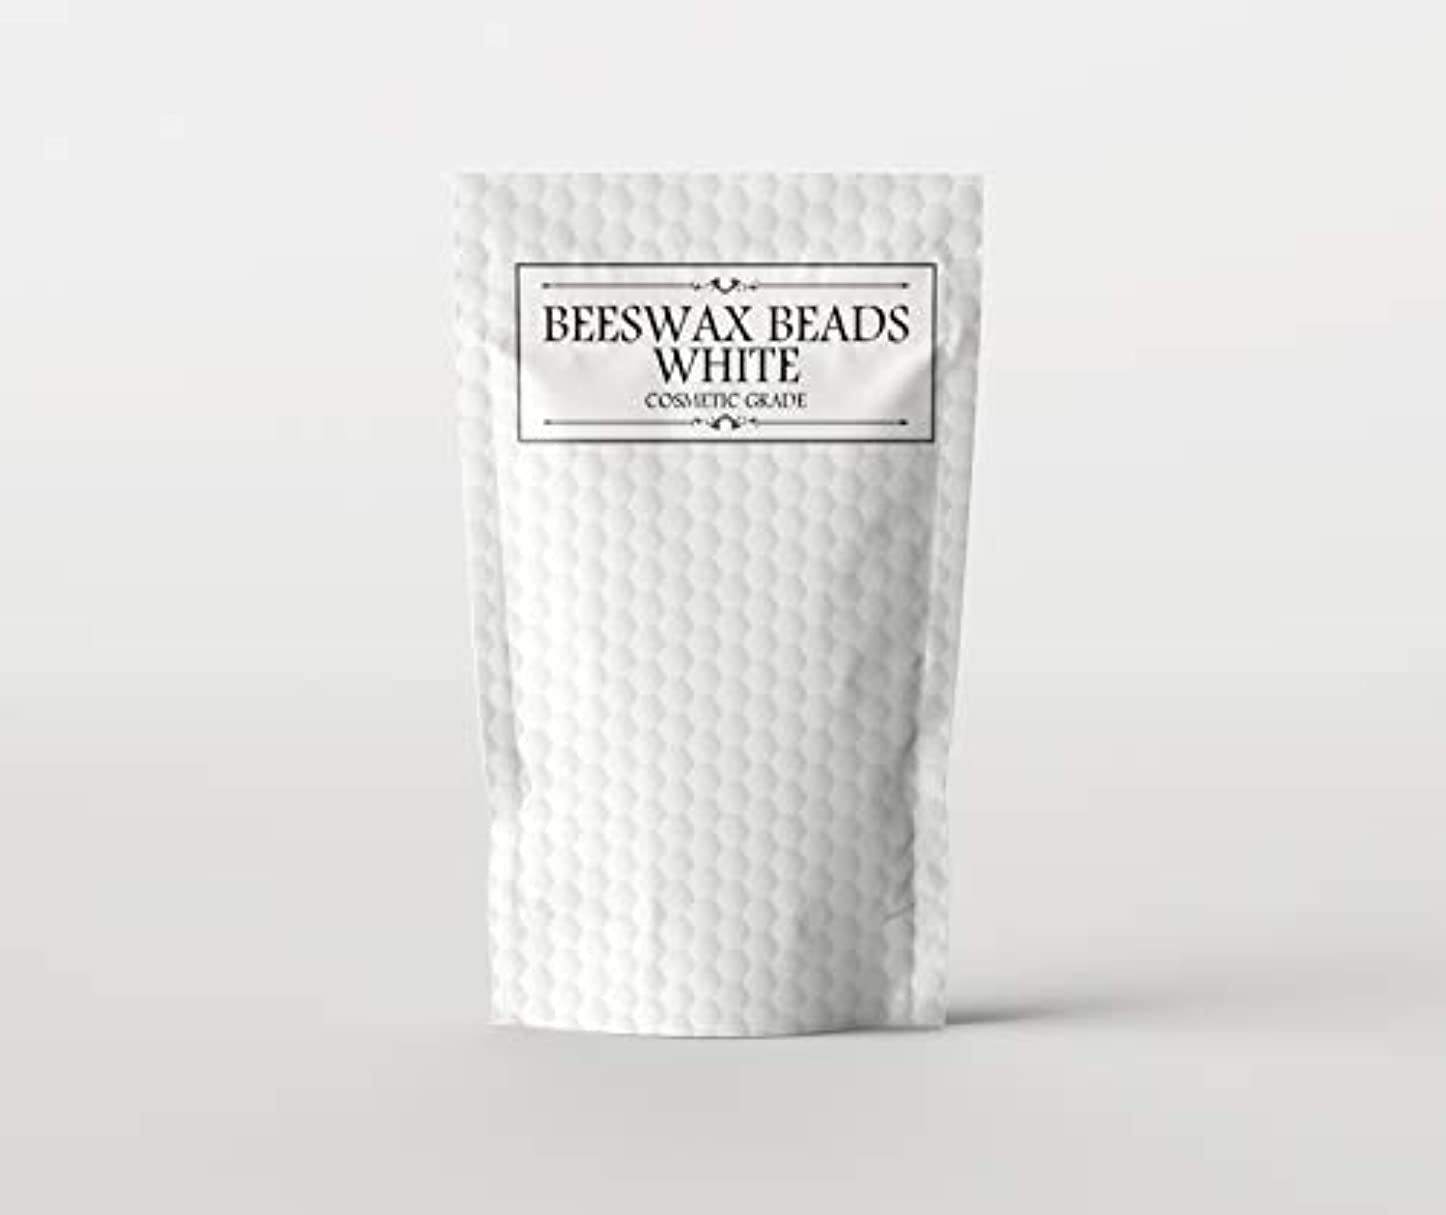 東産地上下するBeeswax Beads White - Cosmetic Grade - 1Kg